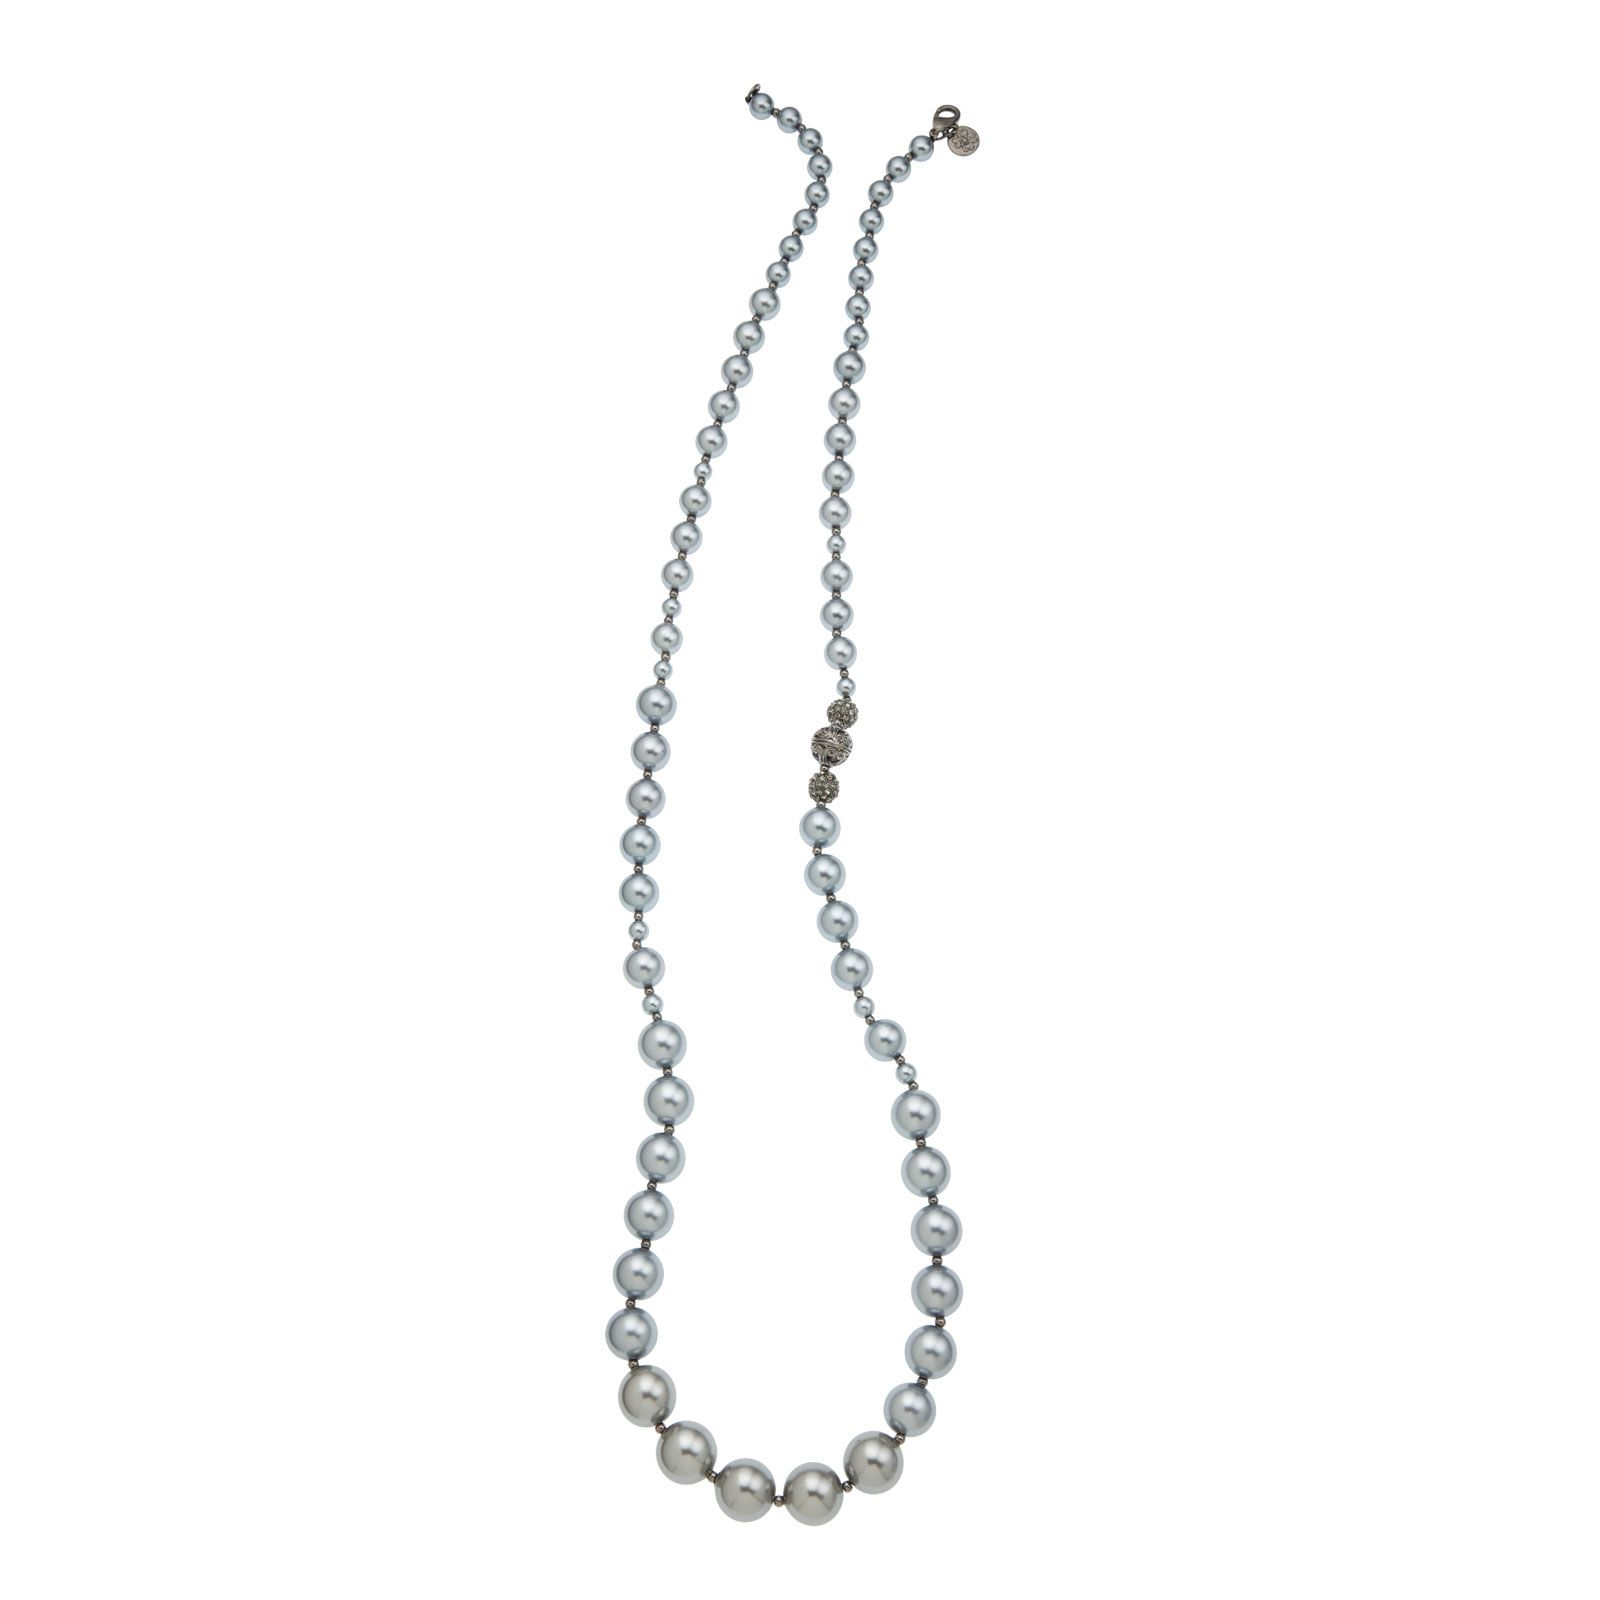 "Pearl-Black Grace Adele 36"" Necklace"